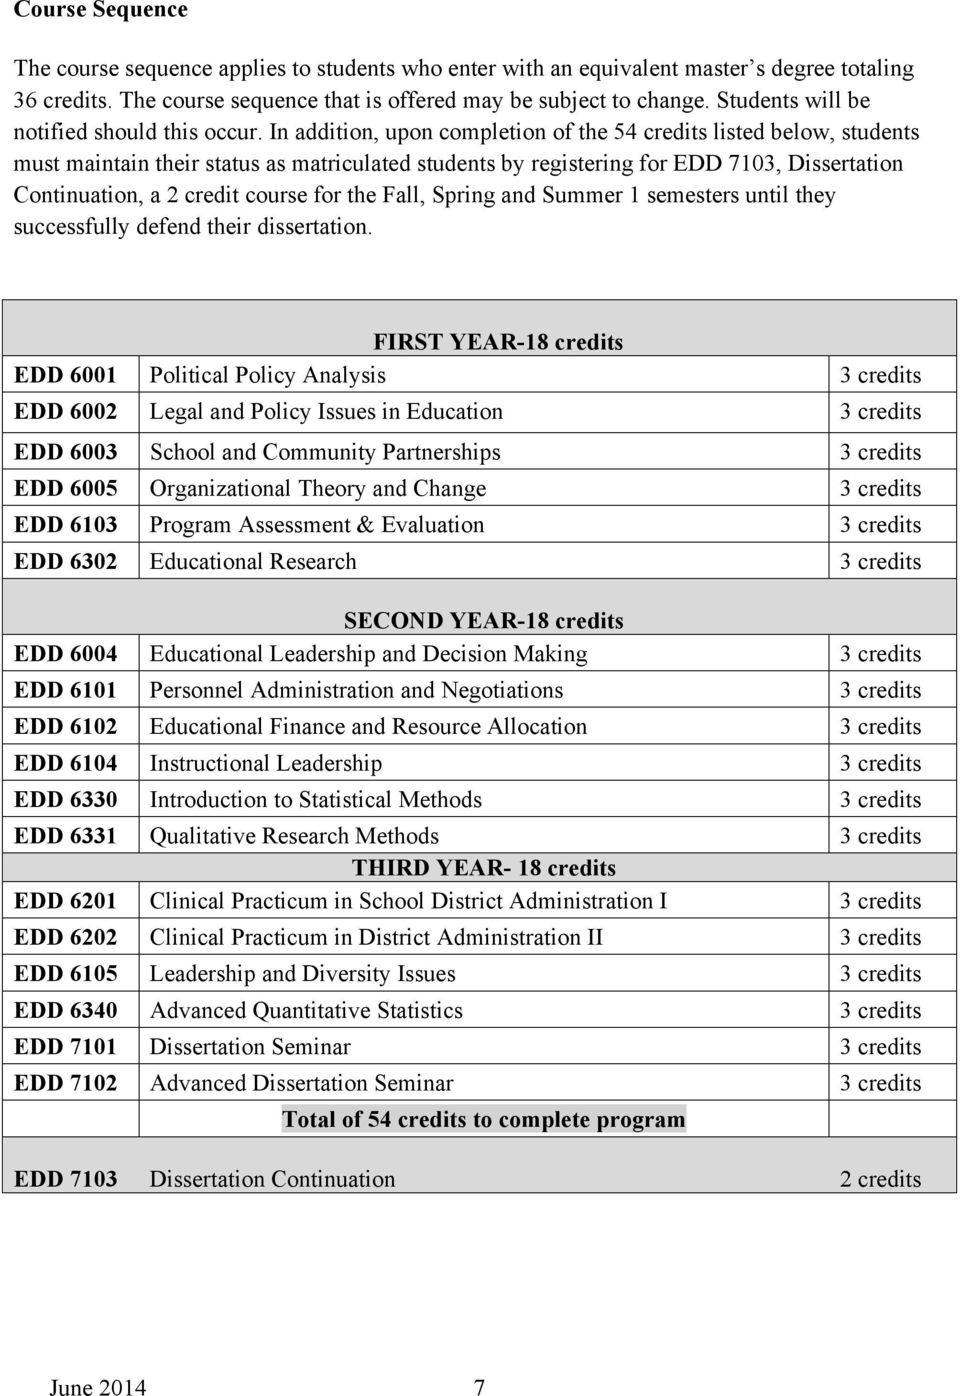 In addition, upon completion of the 54 credits listed below, students must maintain their status as matriculated students by registering for EDD 7103, Dissertation Continuation, a 2 credit course for